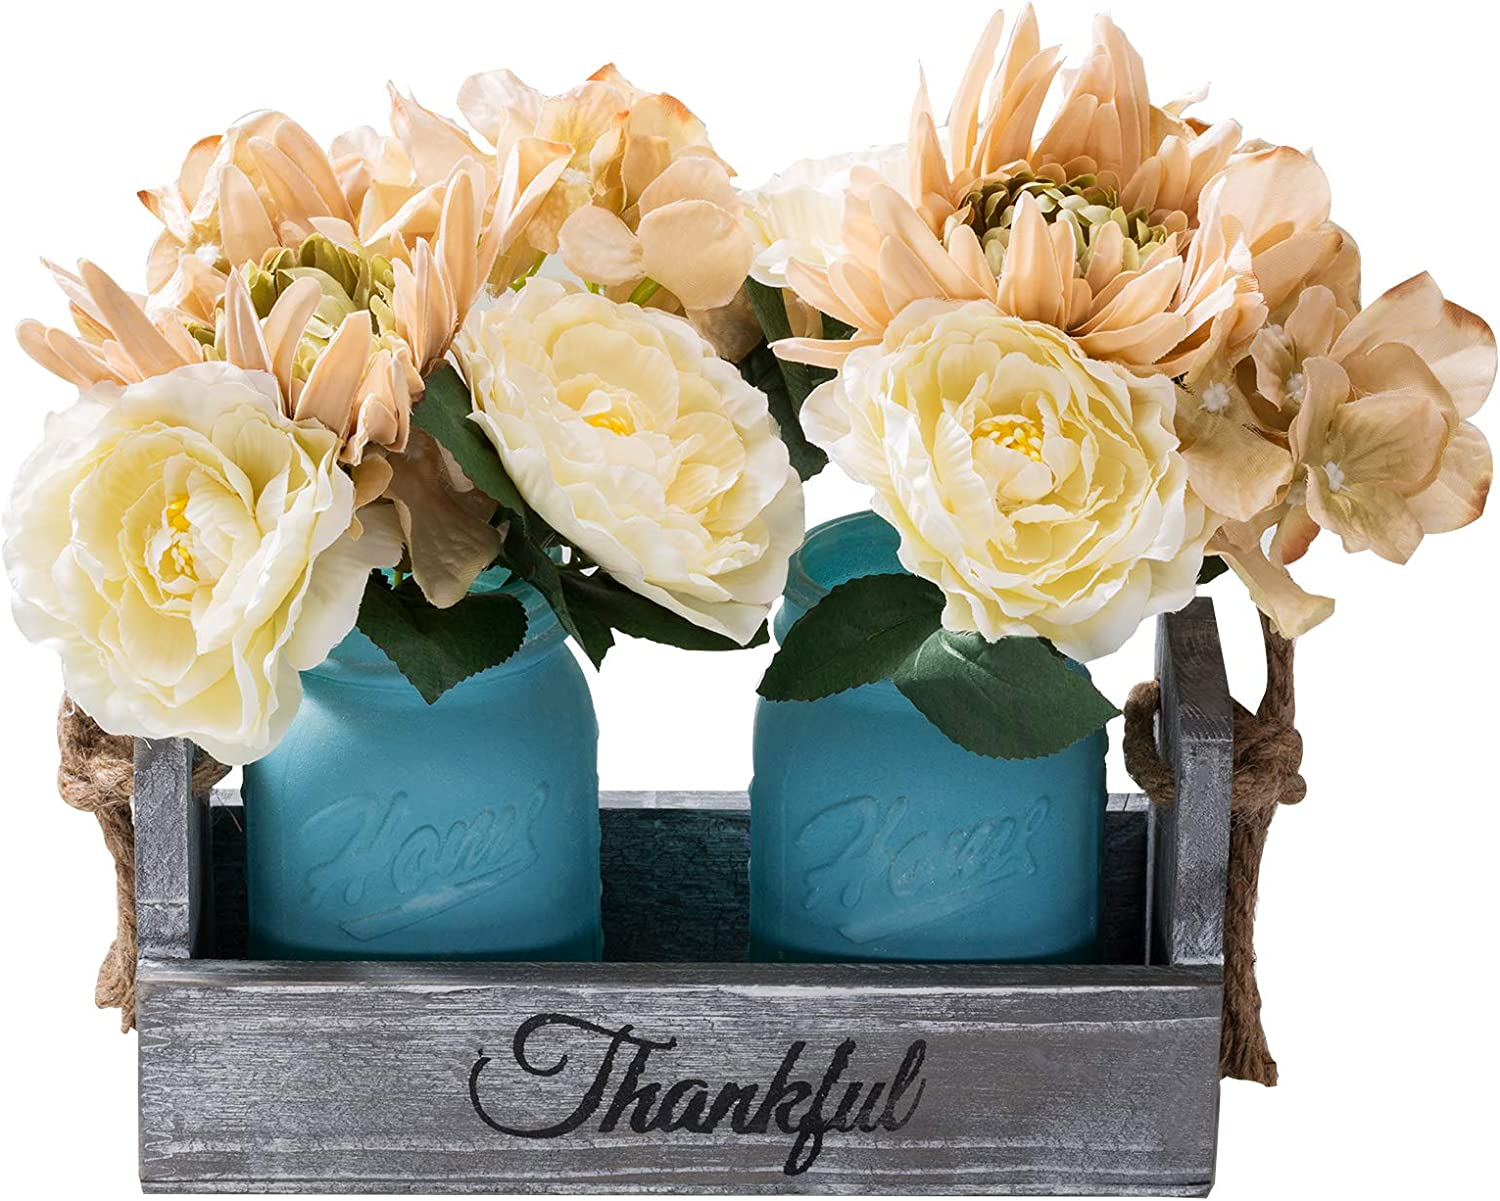 Mason Jar Table Centerpiece - with Flower Rustic Farmhouse Kitchen - Table Decor Centerpiece - Home Coffee Table Dining Room,Living Room Kitchen(Blue, Medium)